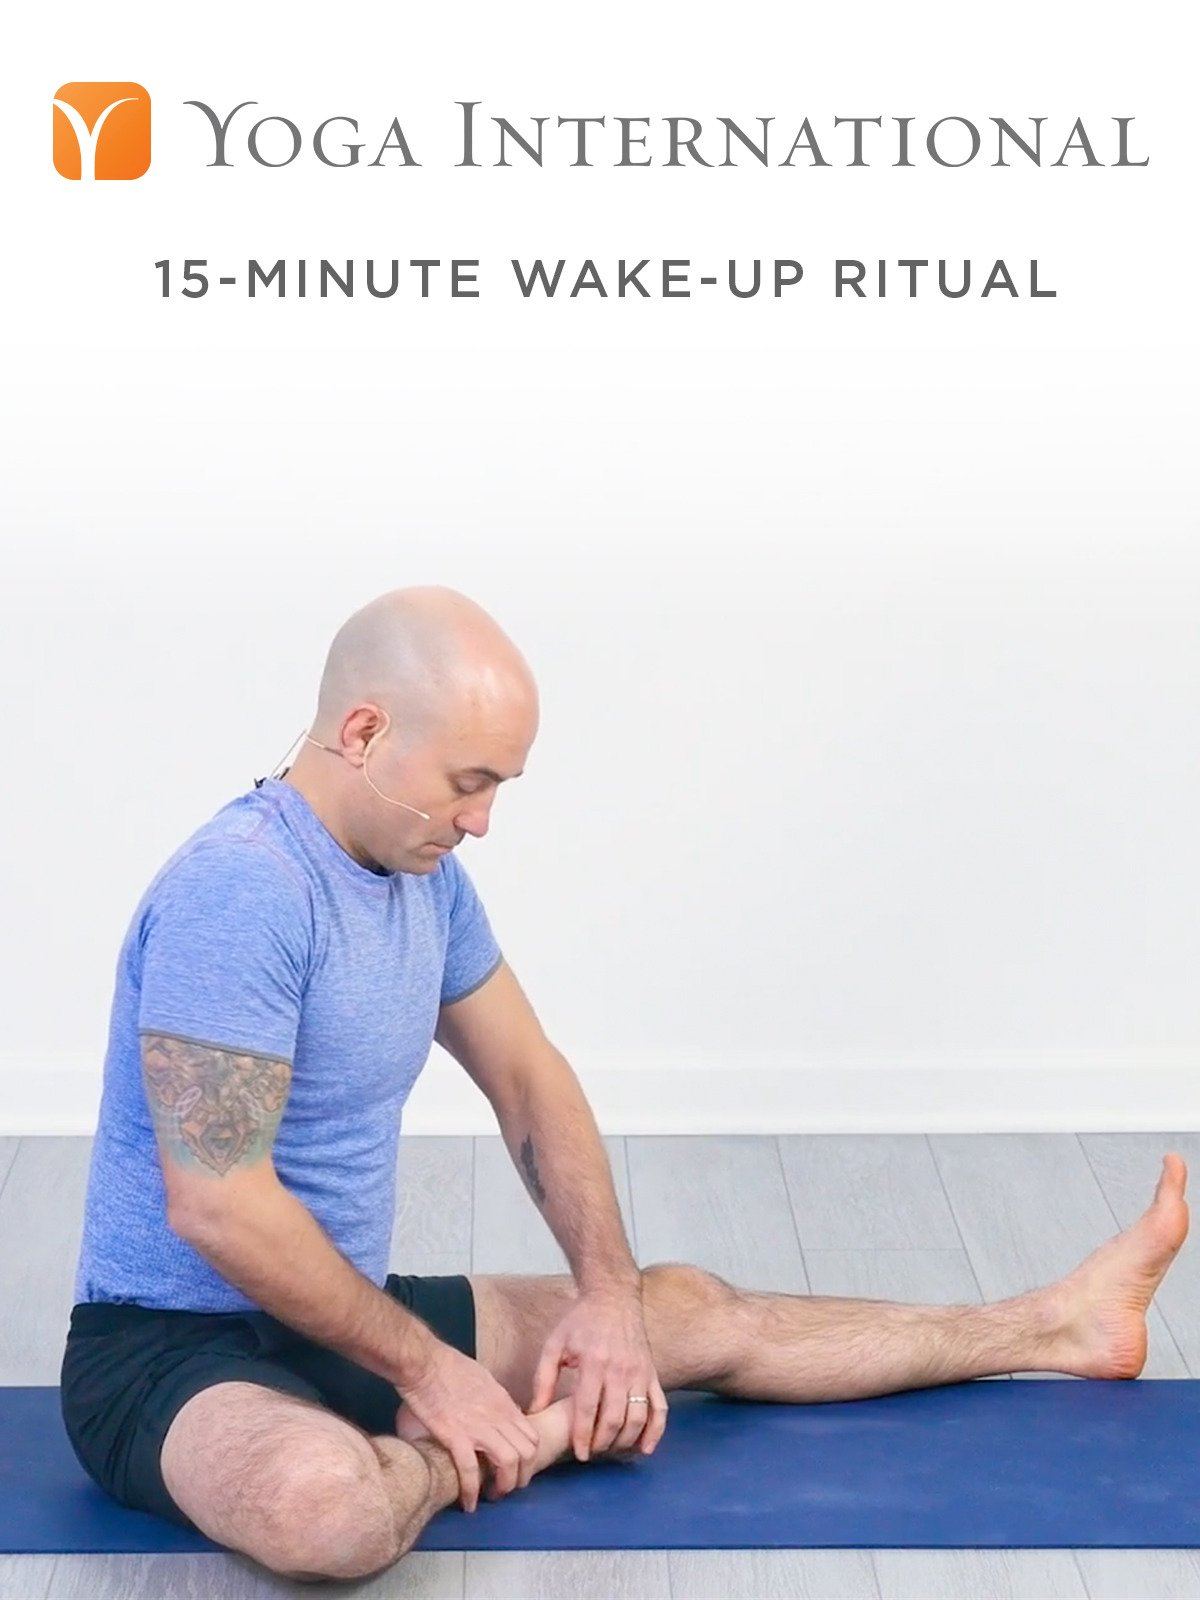 15-Minute Wake-up Ritual